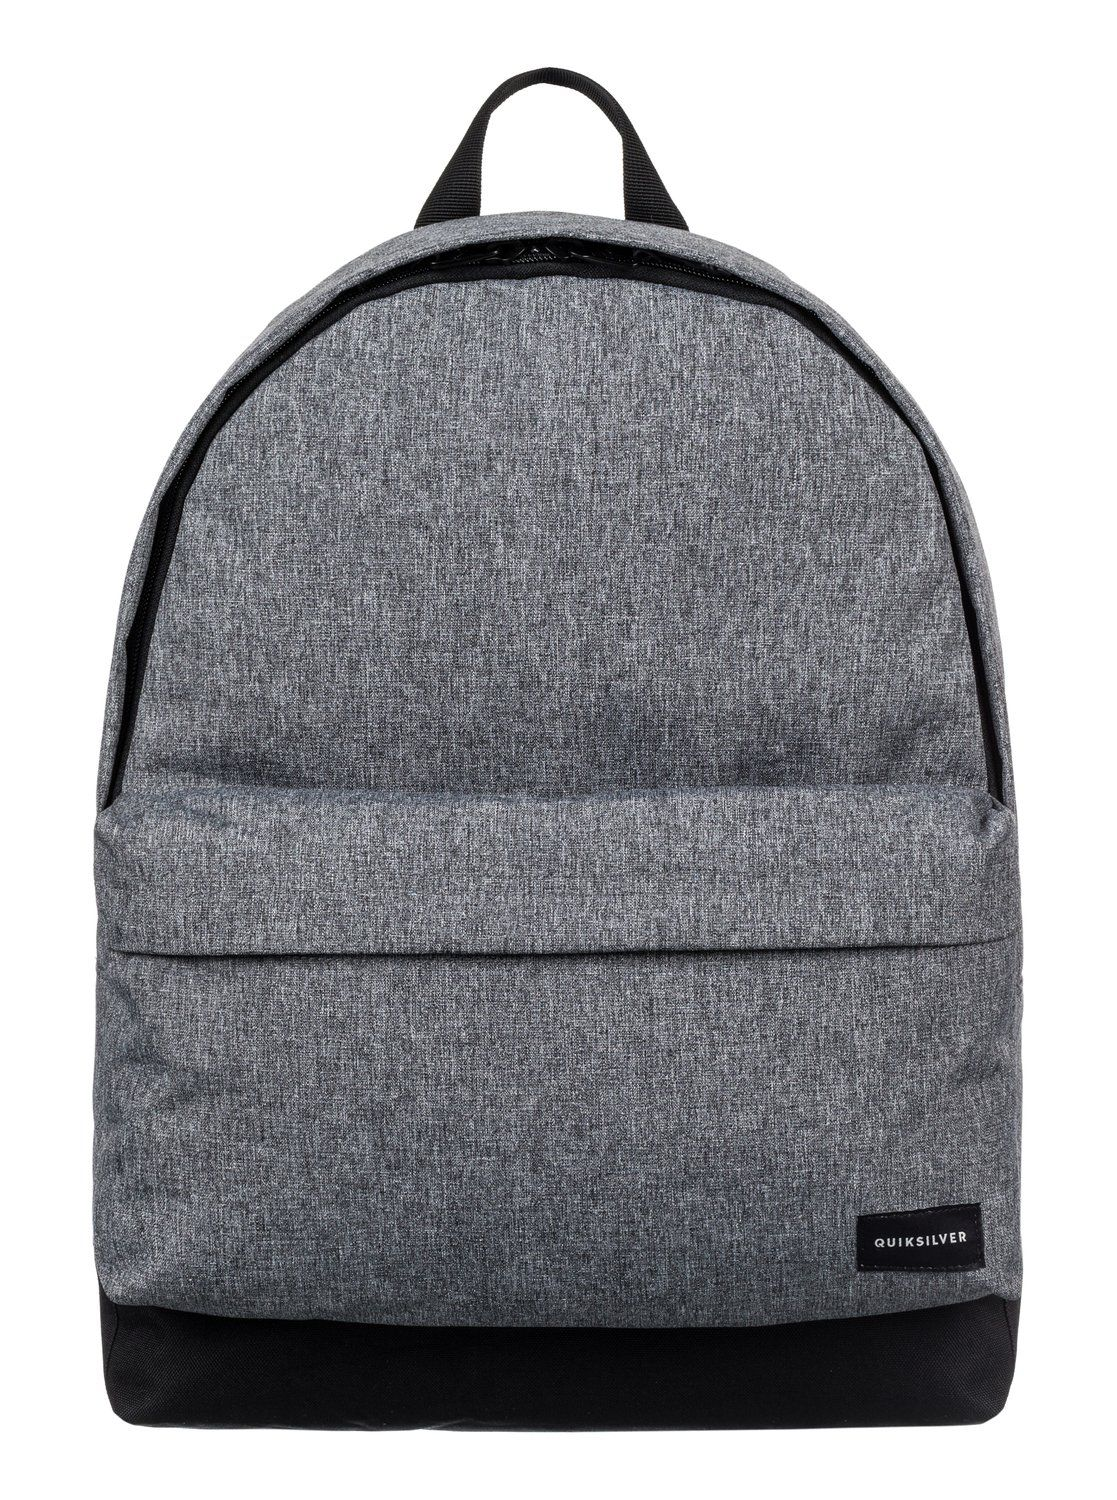 Quiksilver Quiksilver Everyday Poster 25L Backpack, Grey